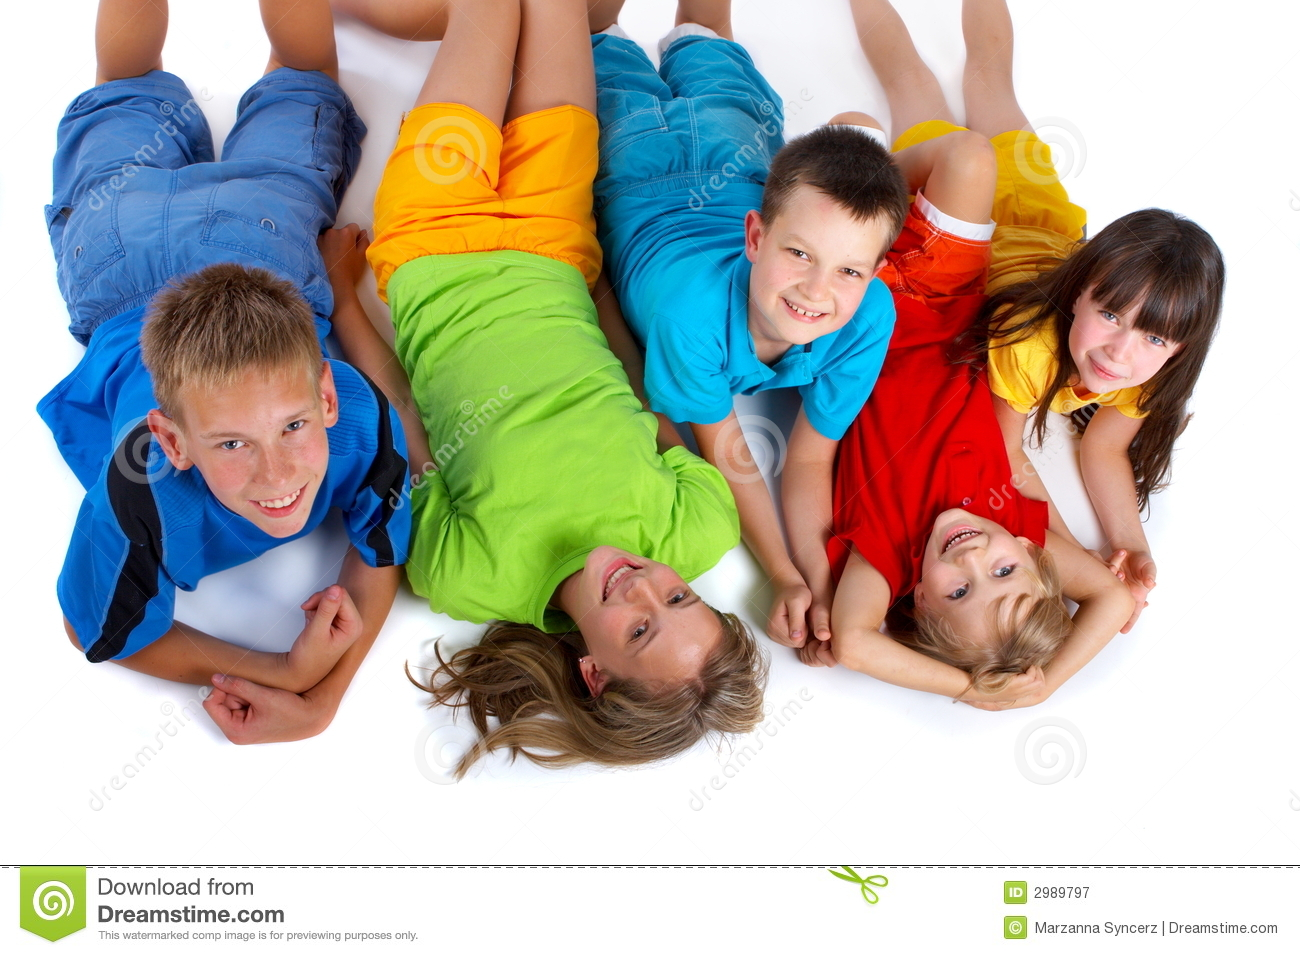 Grinning Kids Royalty Free Stock Photography - Image: 2989797